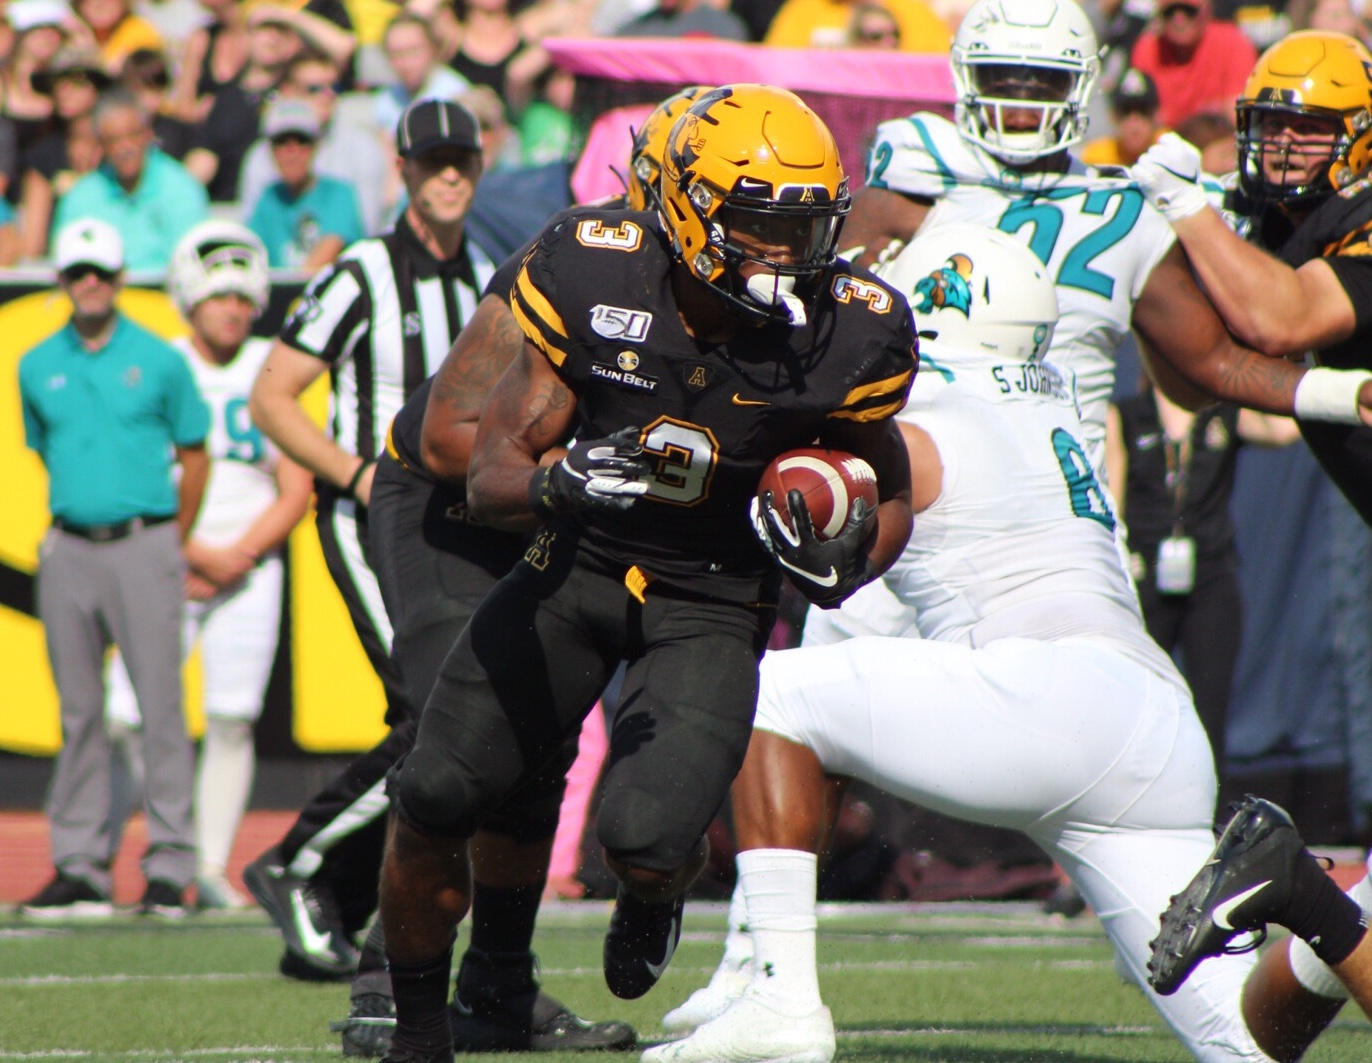 Junior running back Darrynton Evans runs with the ball during the first quarter of App State's matchup with Coastal Carolina on Sept. 28.